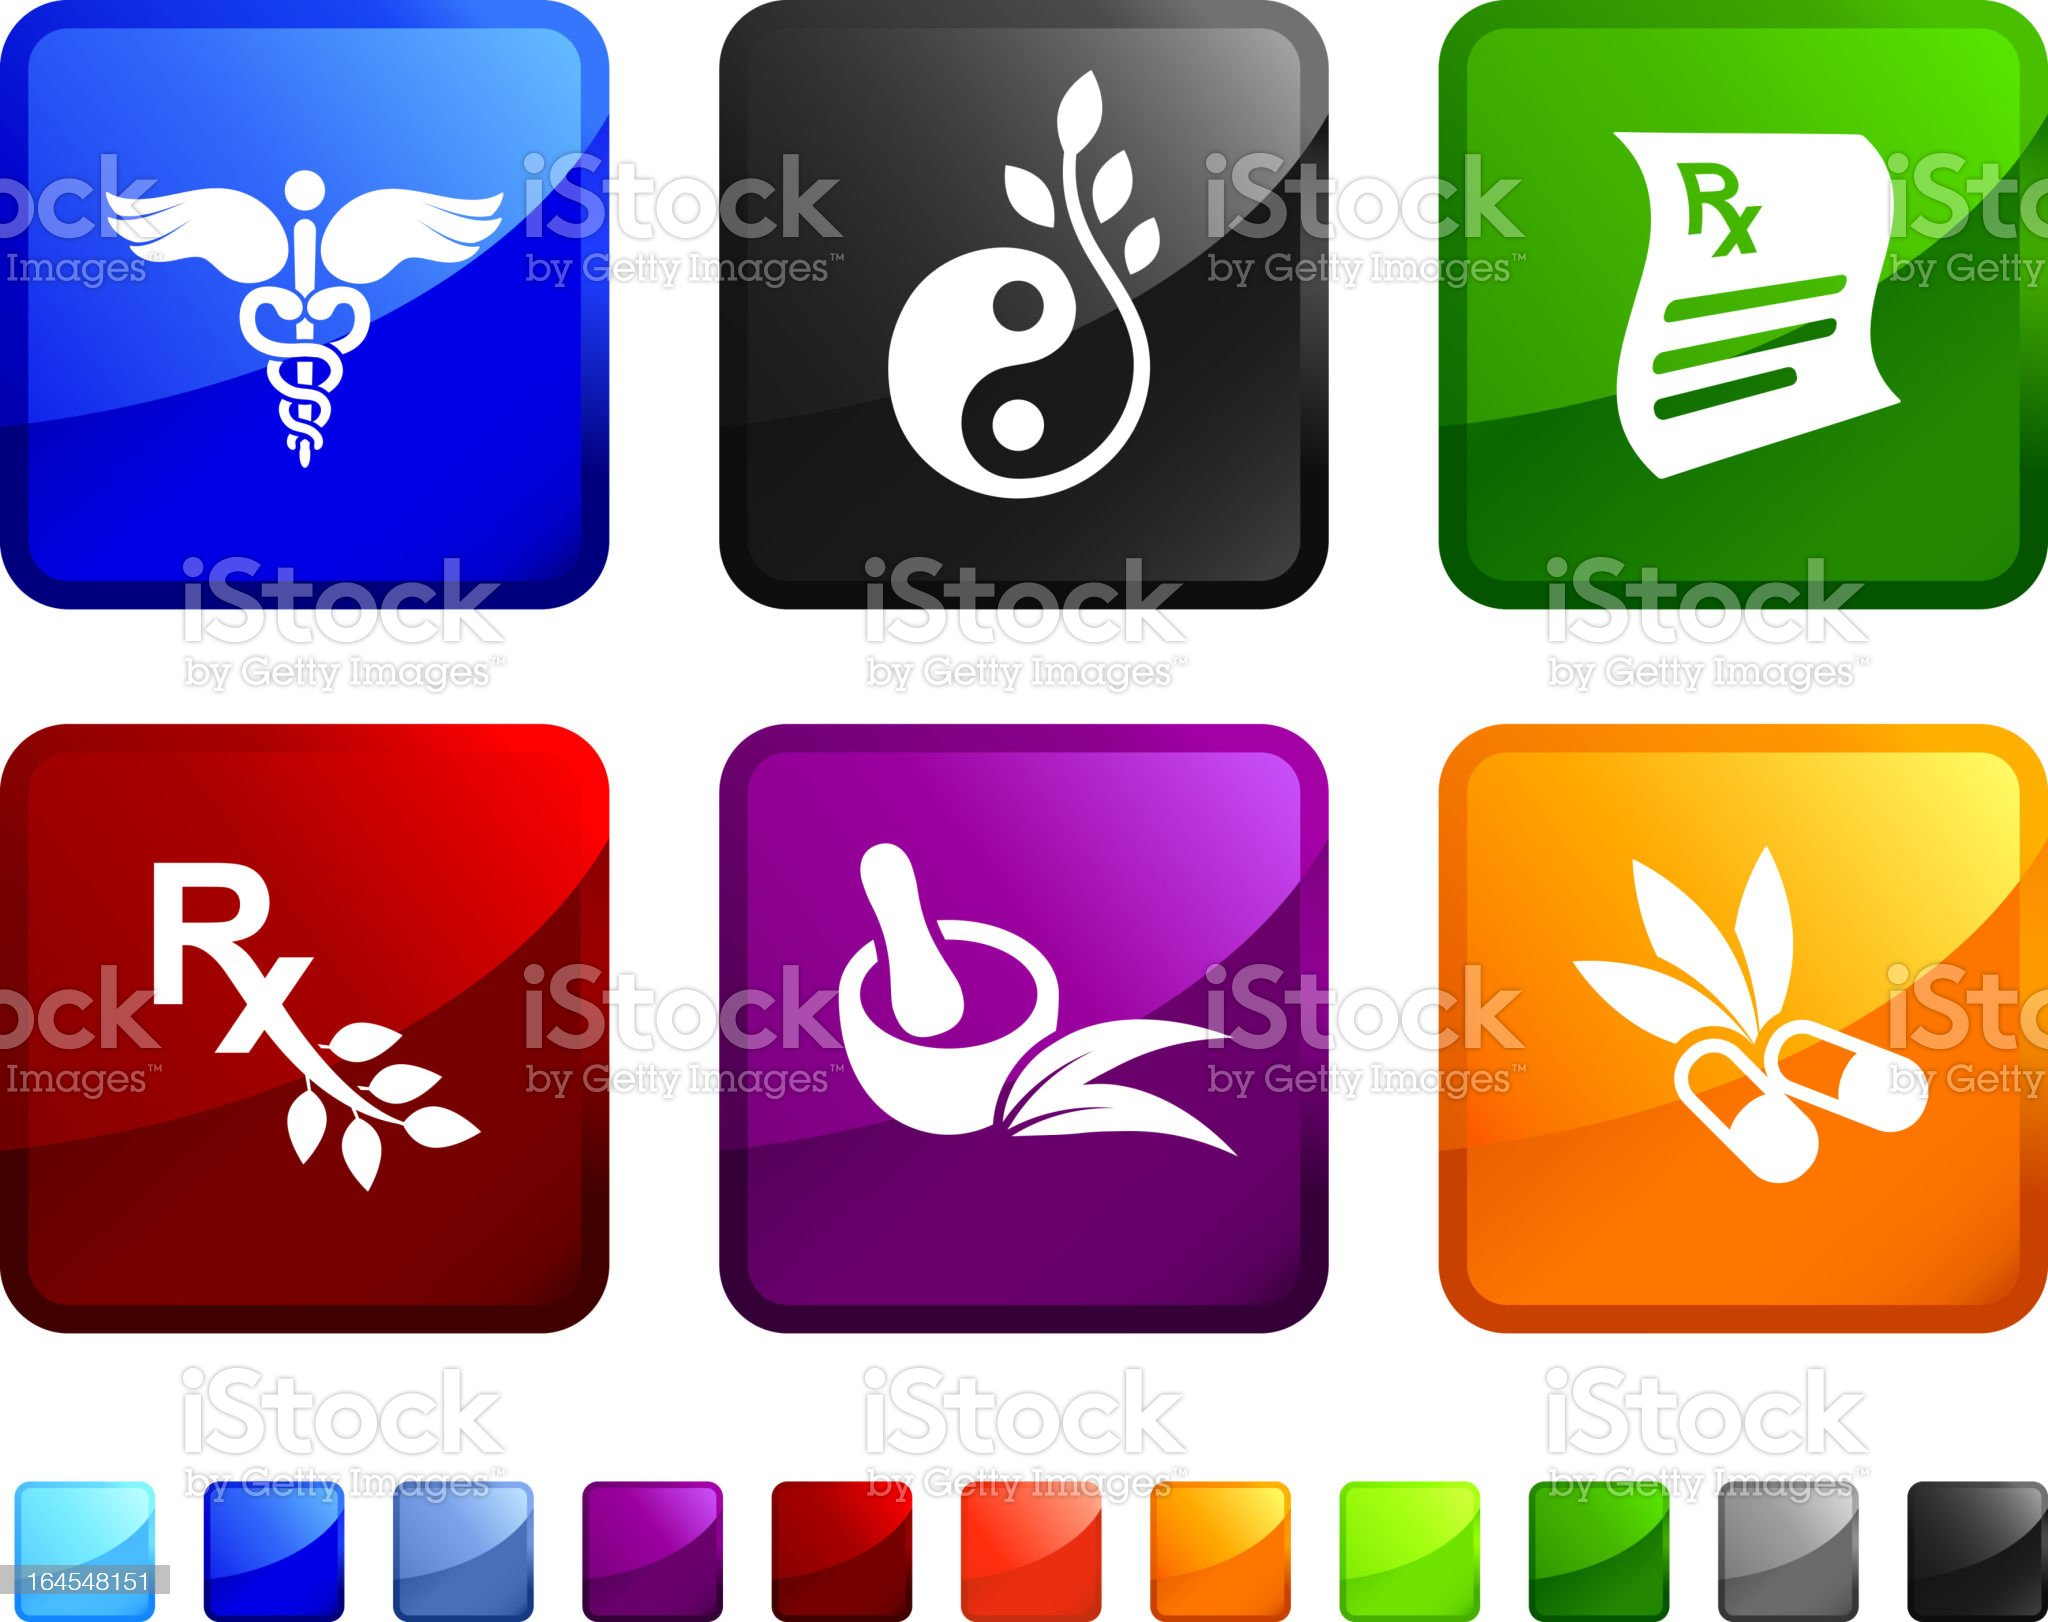 Herbal Medicine royalty free vector icon set stickers royalty-free stock vector art